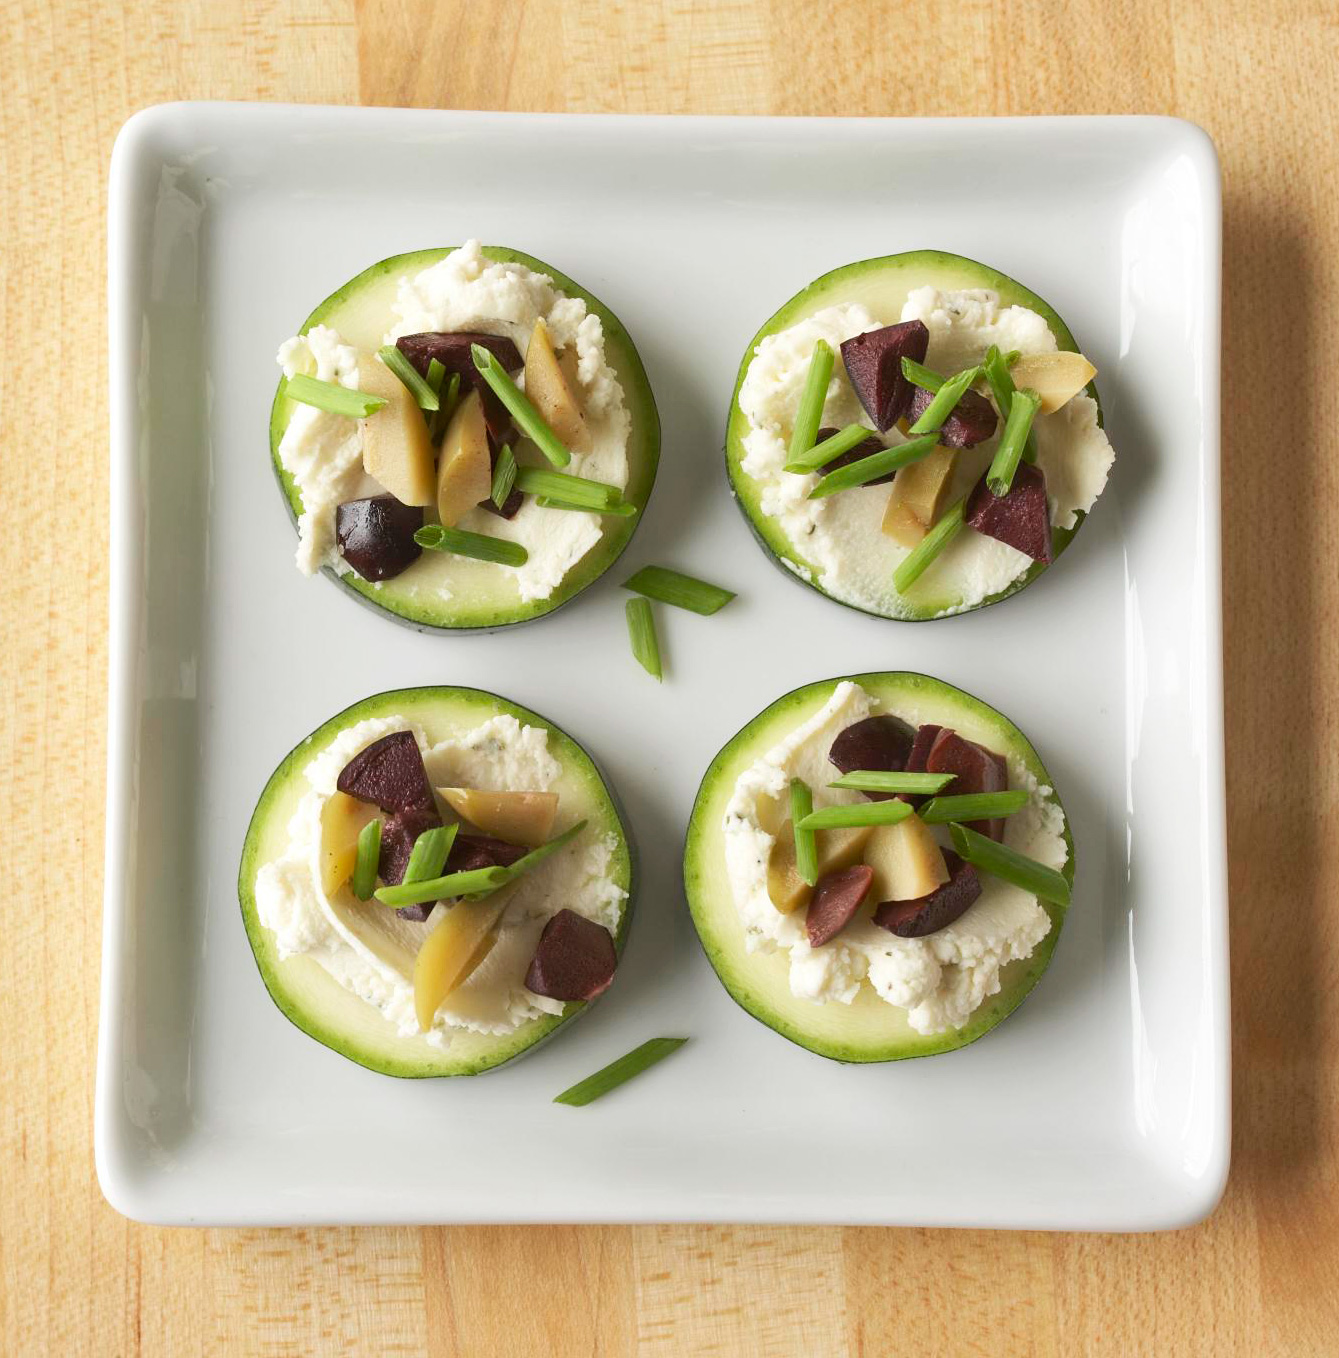 Raw zucchini recipes